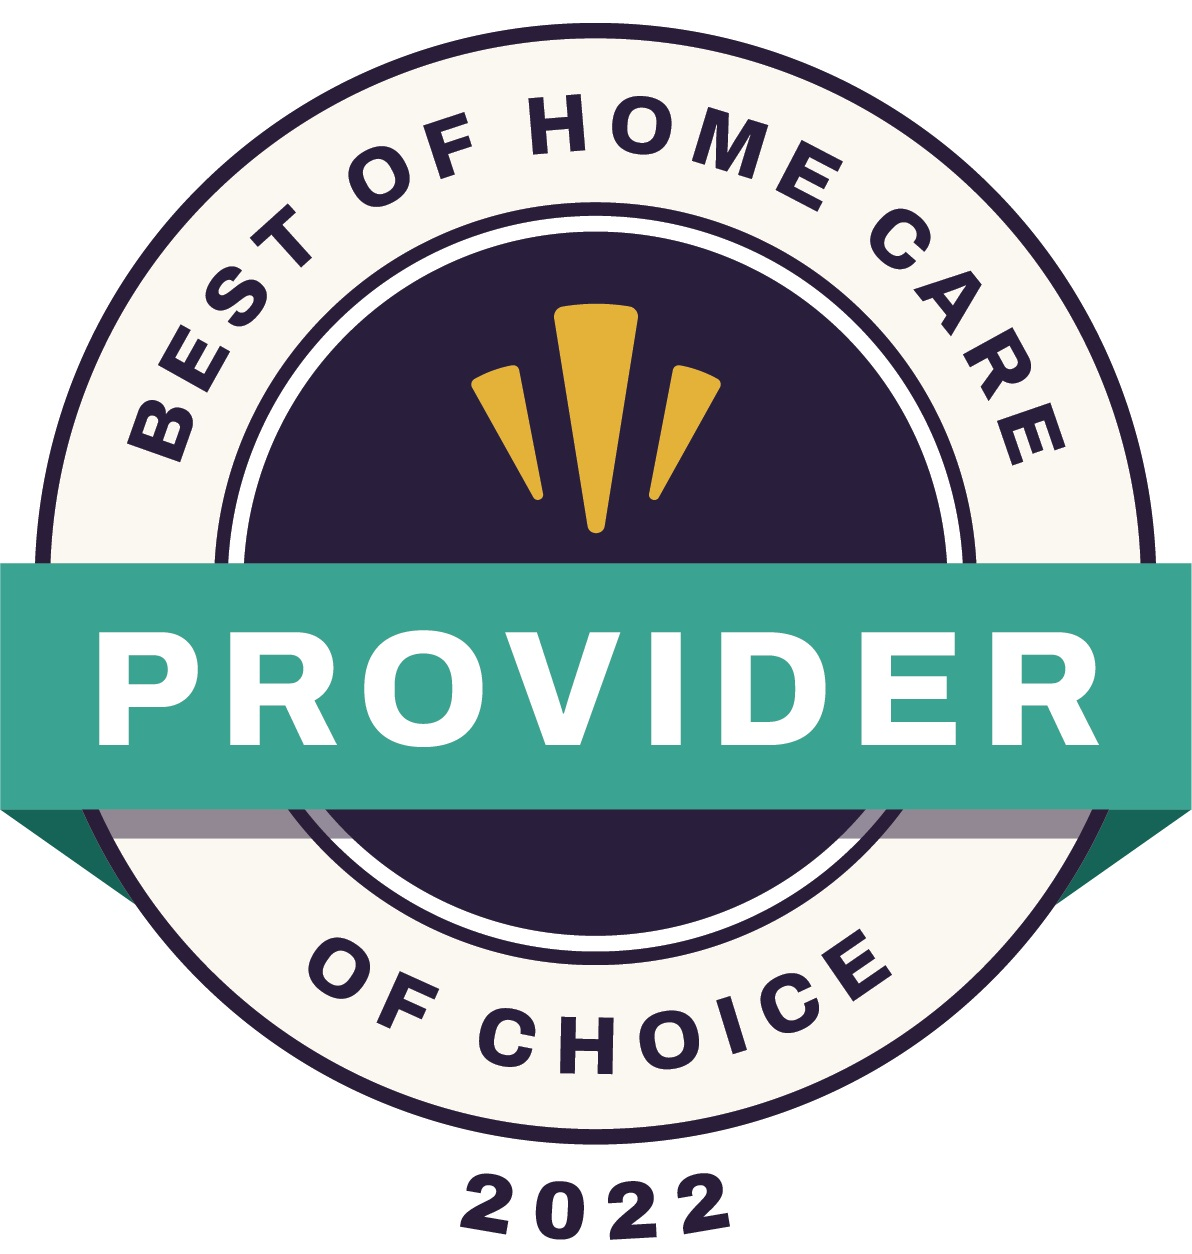 The Best of Home Care – Provider of Choice award signifies high client satisfaction. This award is based on satisfaction ratings gathered from verified clients. To qualify, an agency must outperform other home care agencies in their geographic region in addition to other criteria.